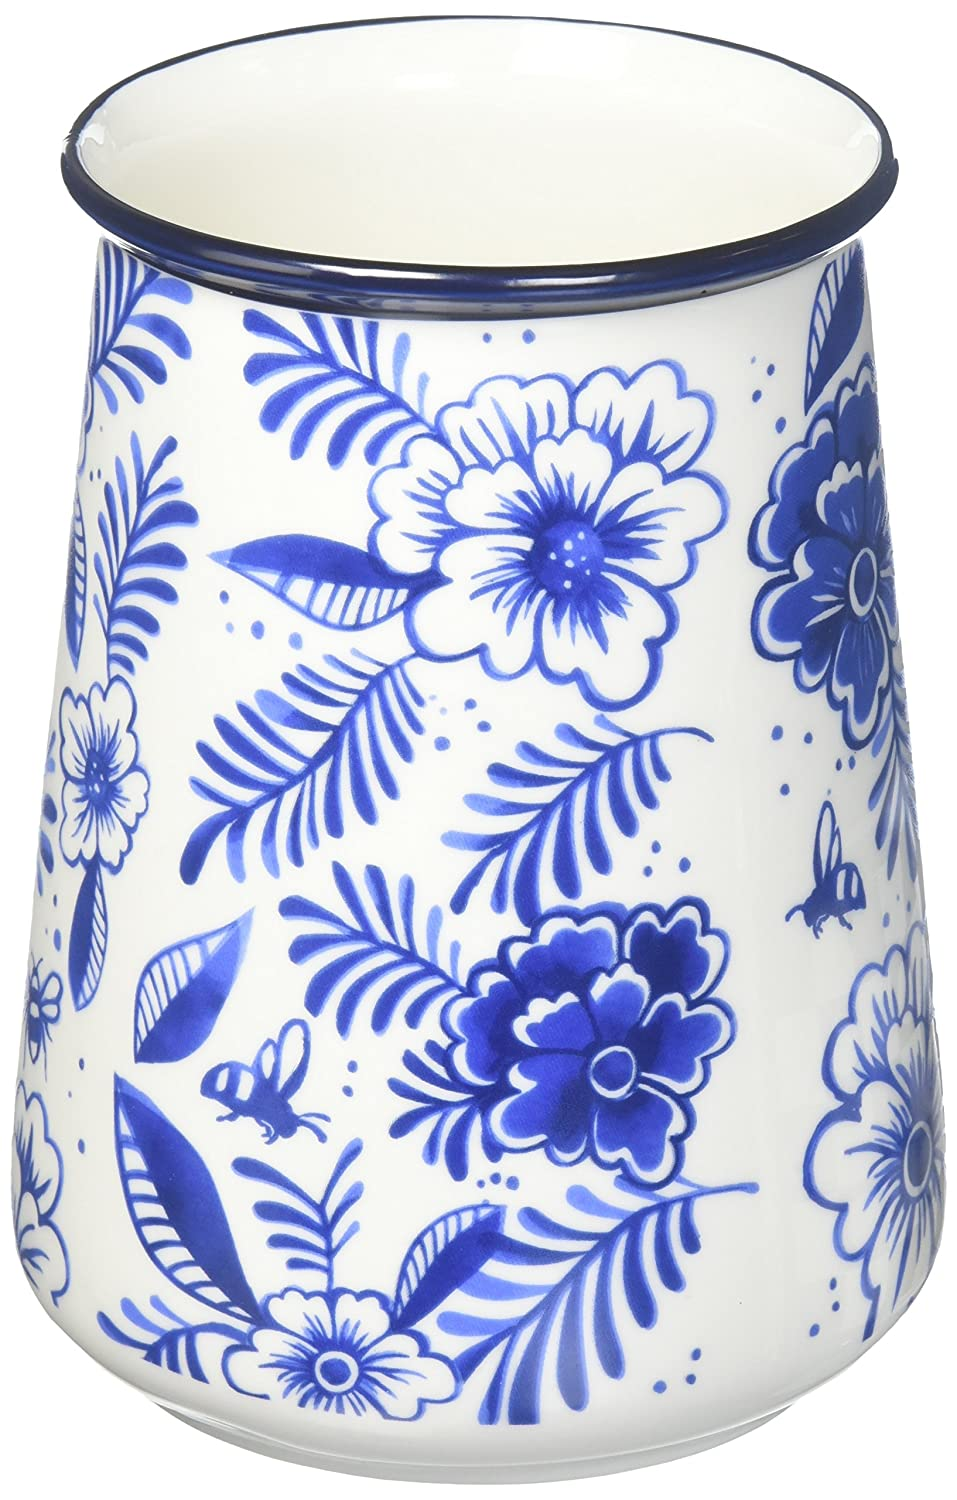 Twine 5534 Pantry Indigo Floral Utensil Holder, Blue, Medium True Fabrication